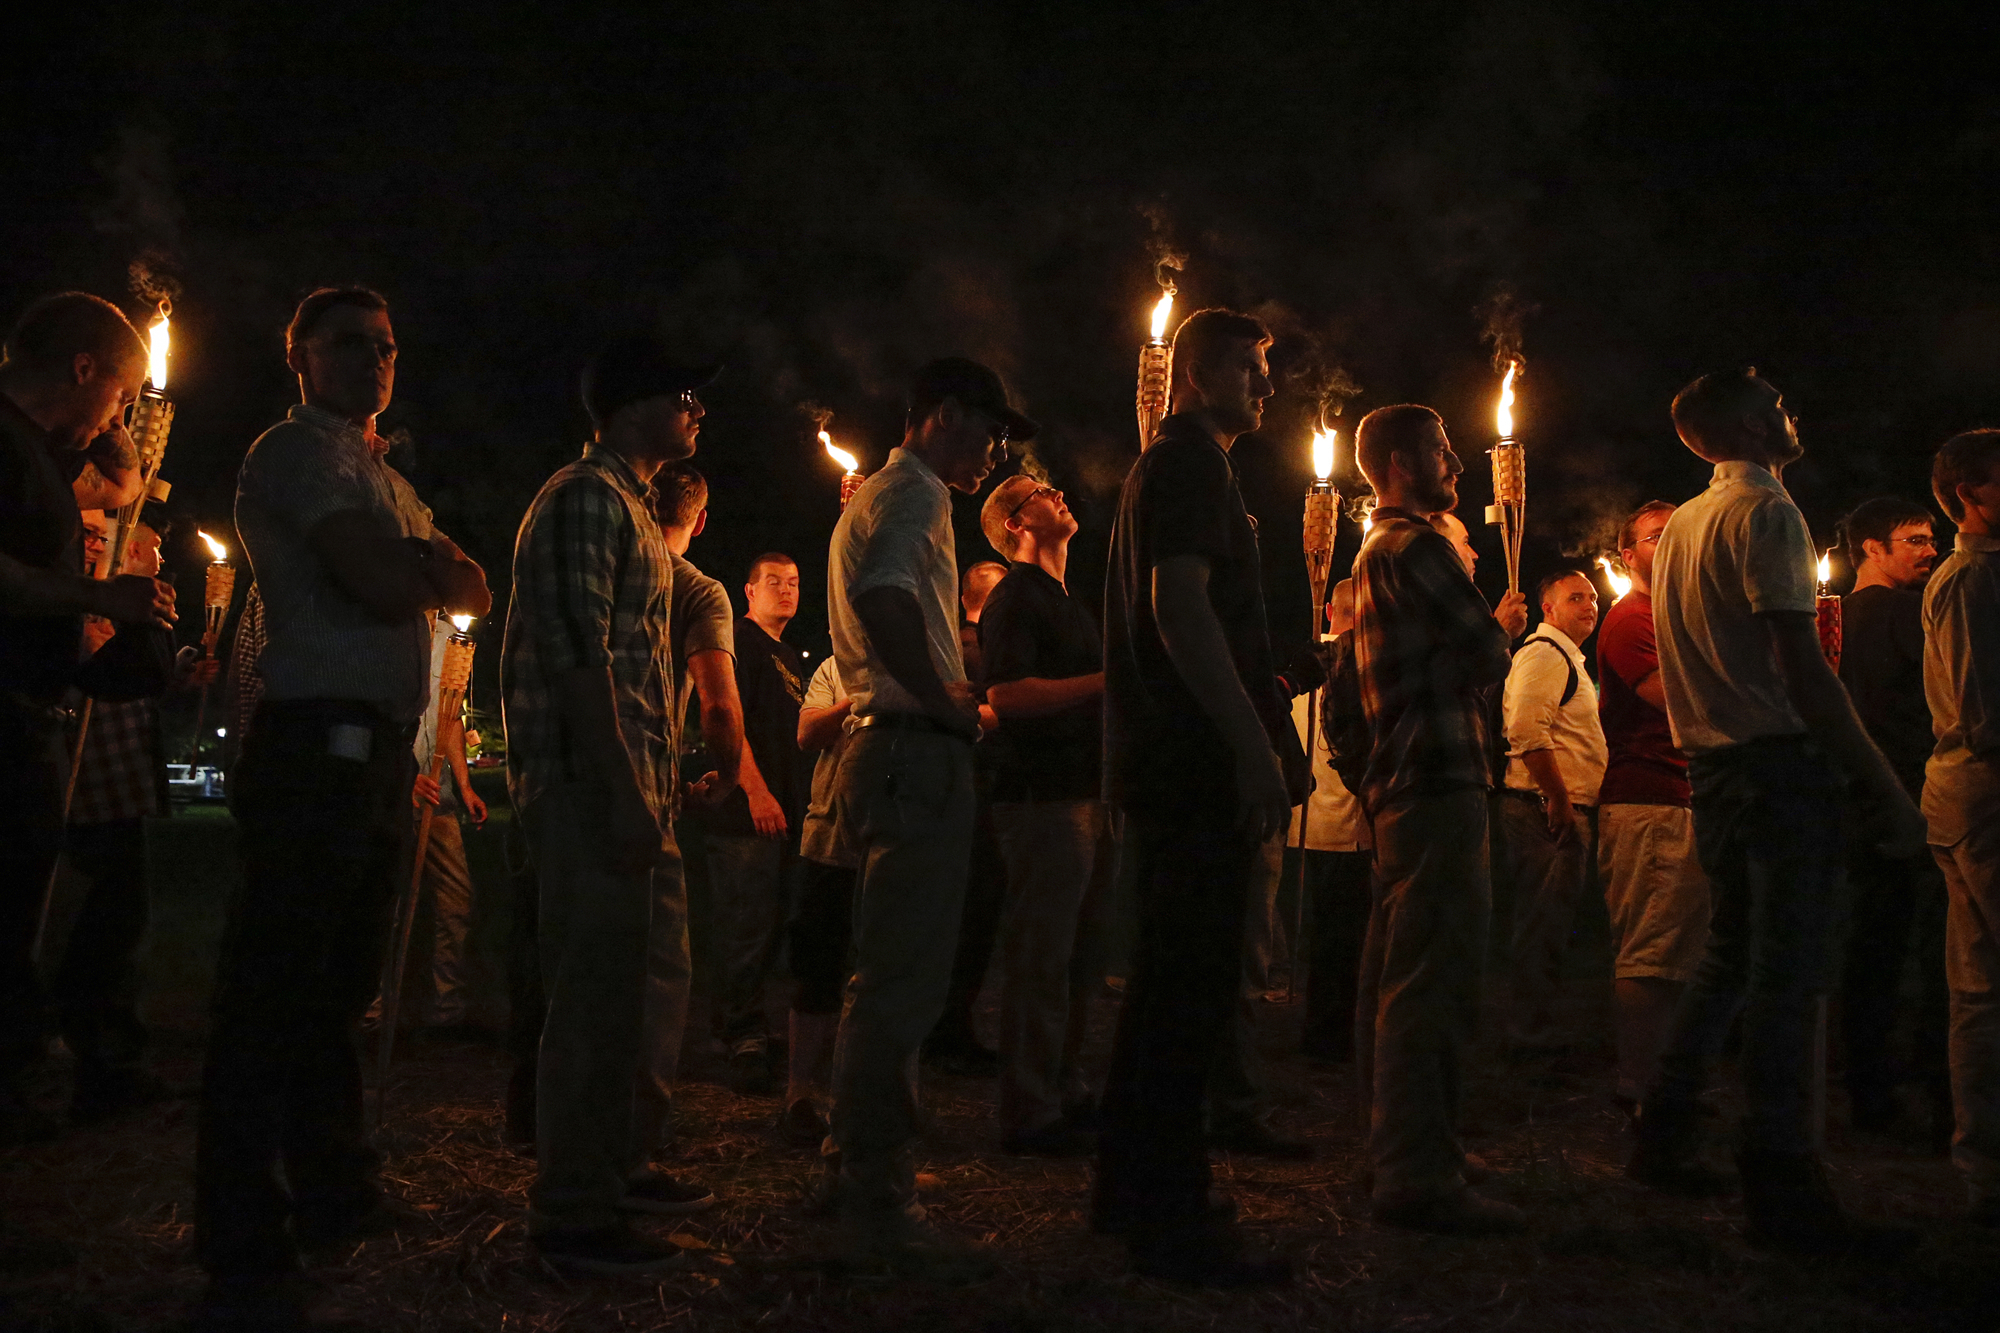 In this August 11, 2017, photo, multiple white nationalist groups march with torches through the University of Virginia campus in Charlottesville, Virginia. (Mykal McEldowney/The Indianapolis Star via AP)